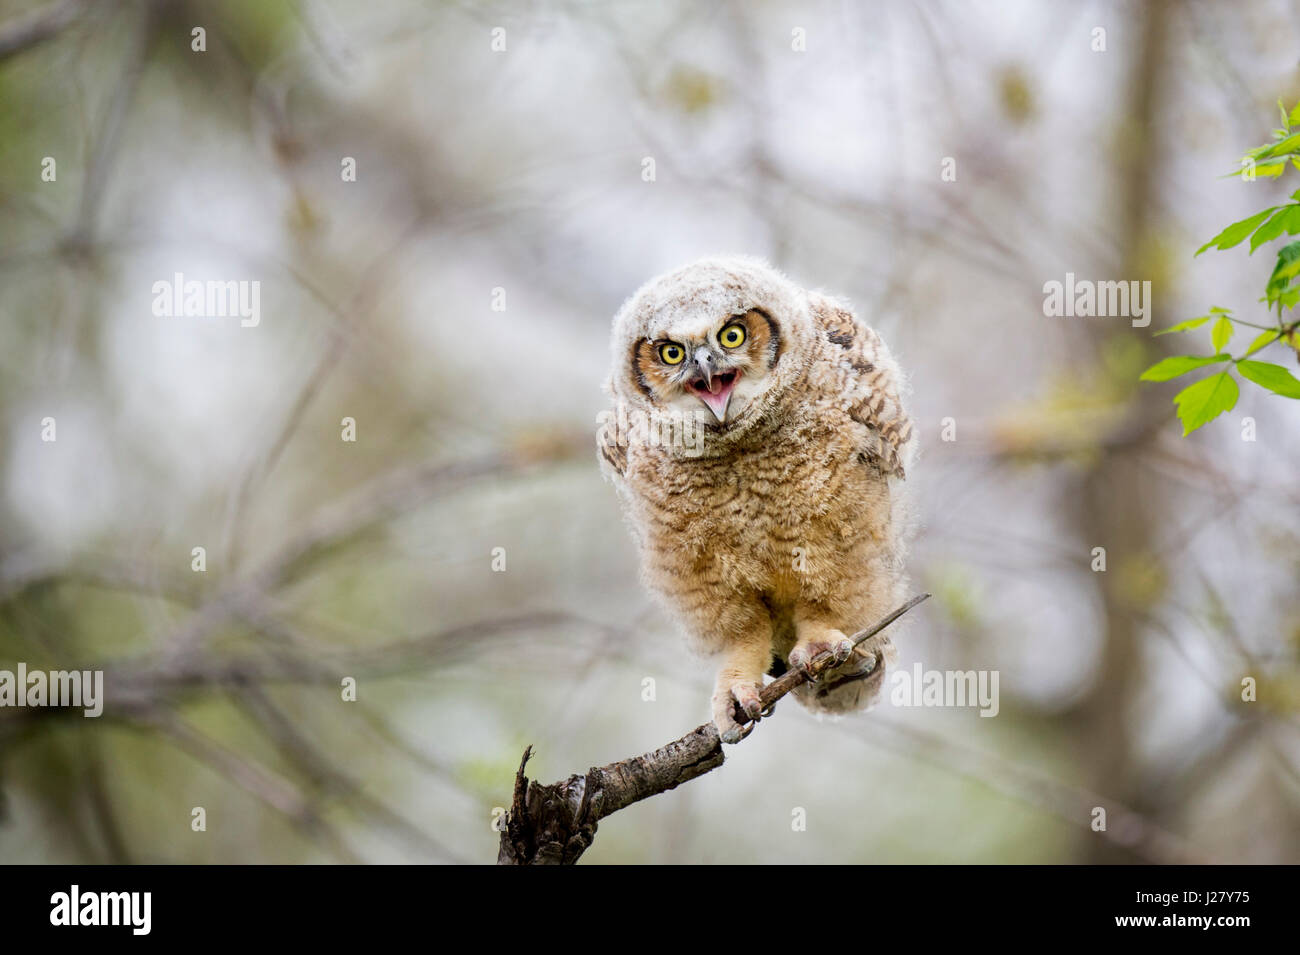 A young Great-horned Owlet calls out while perched on an open branch in the soft morning light. - Stock Image